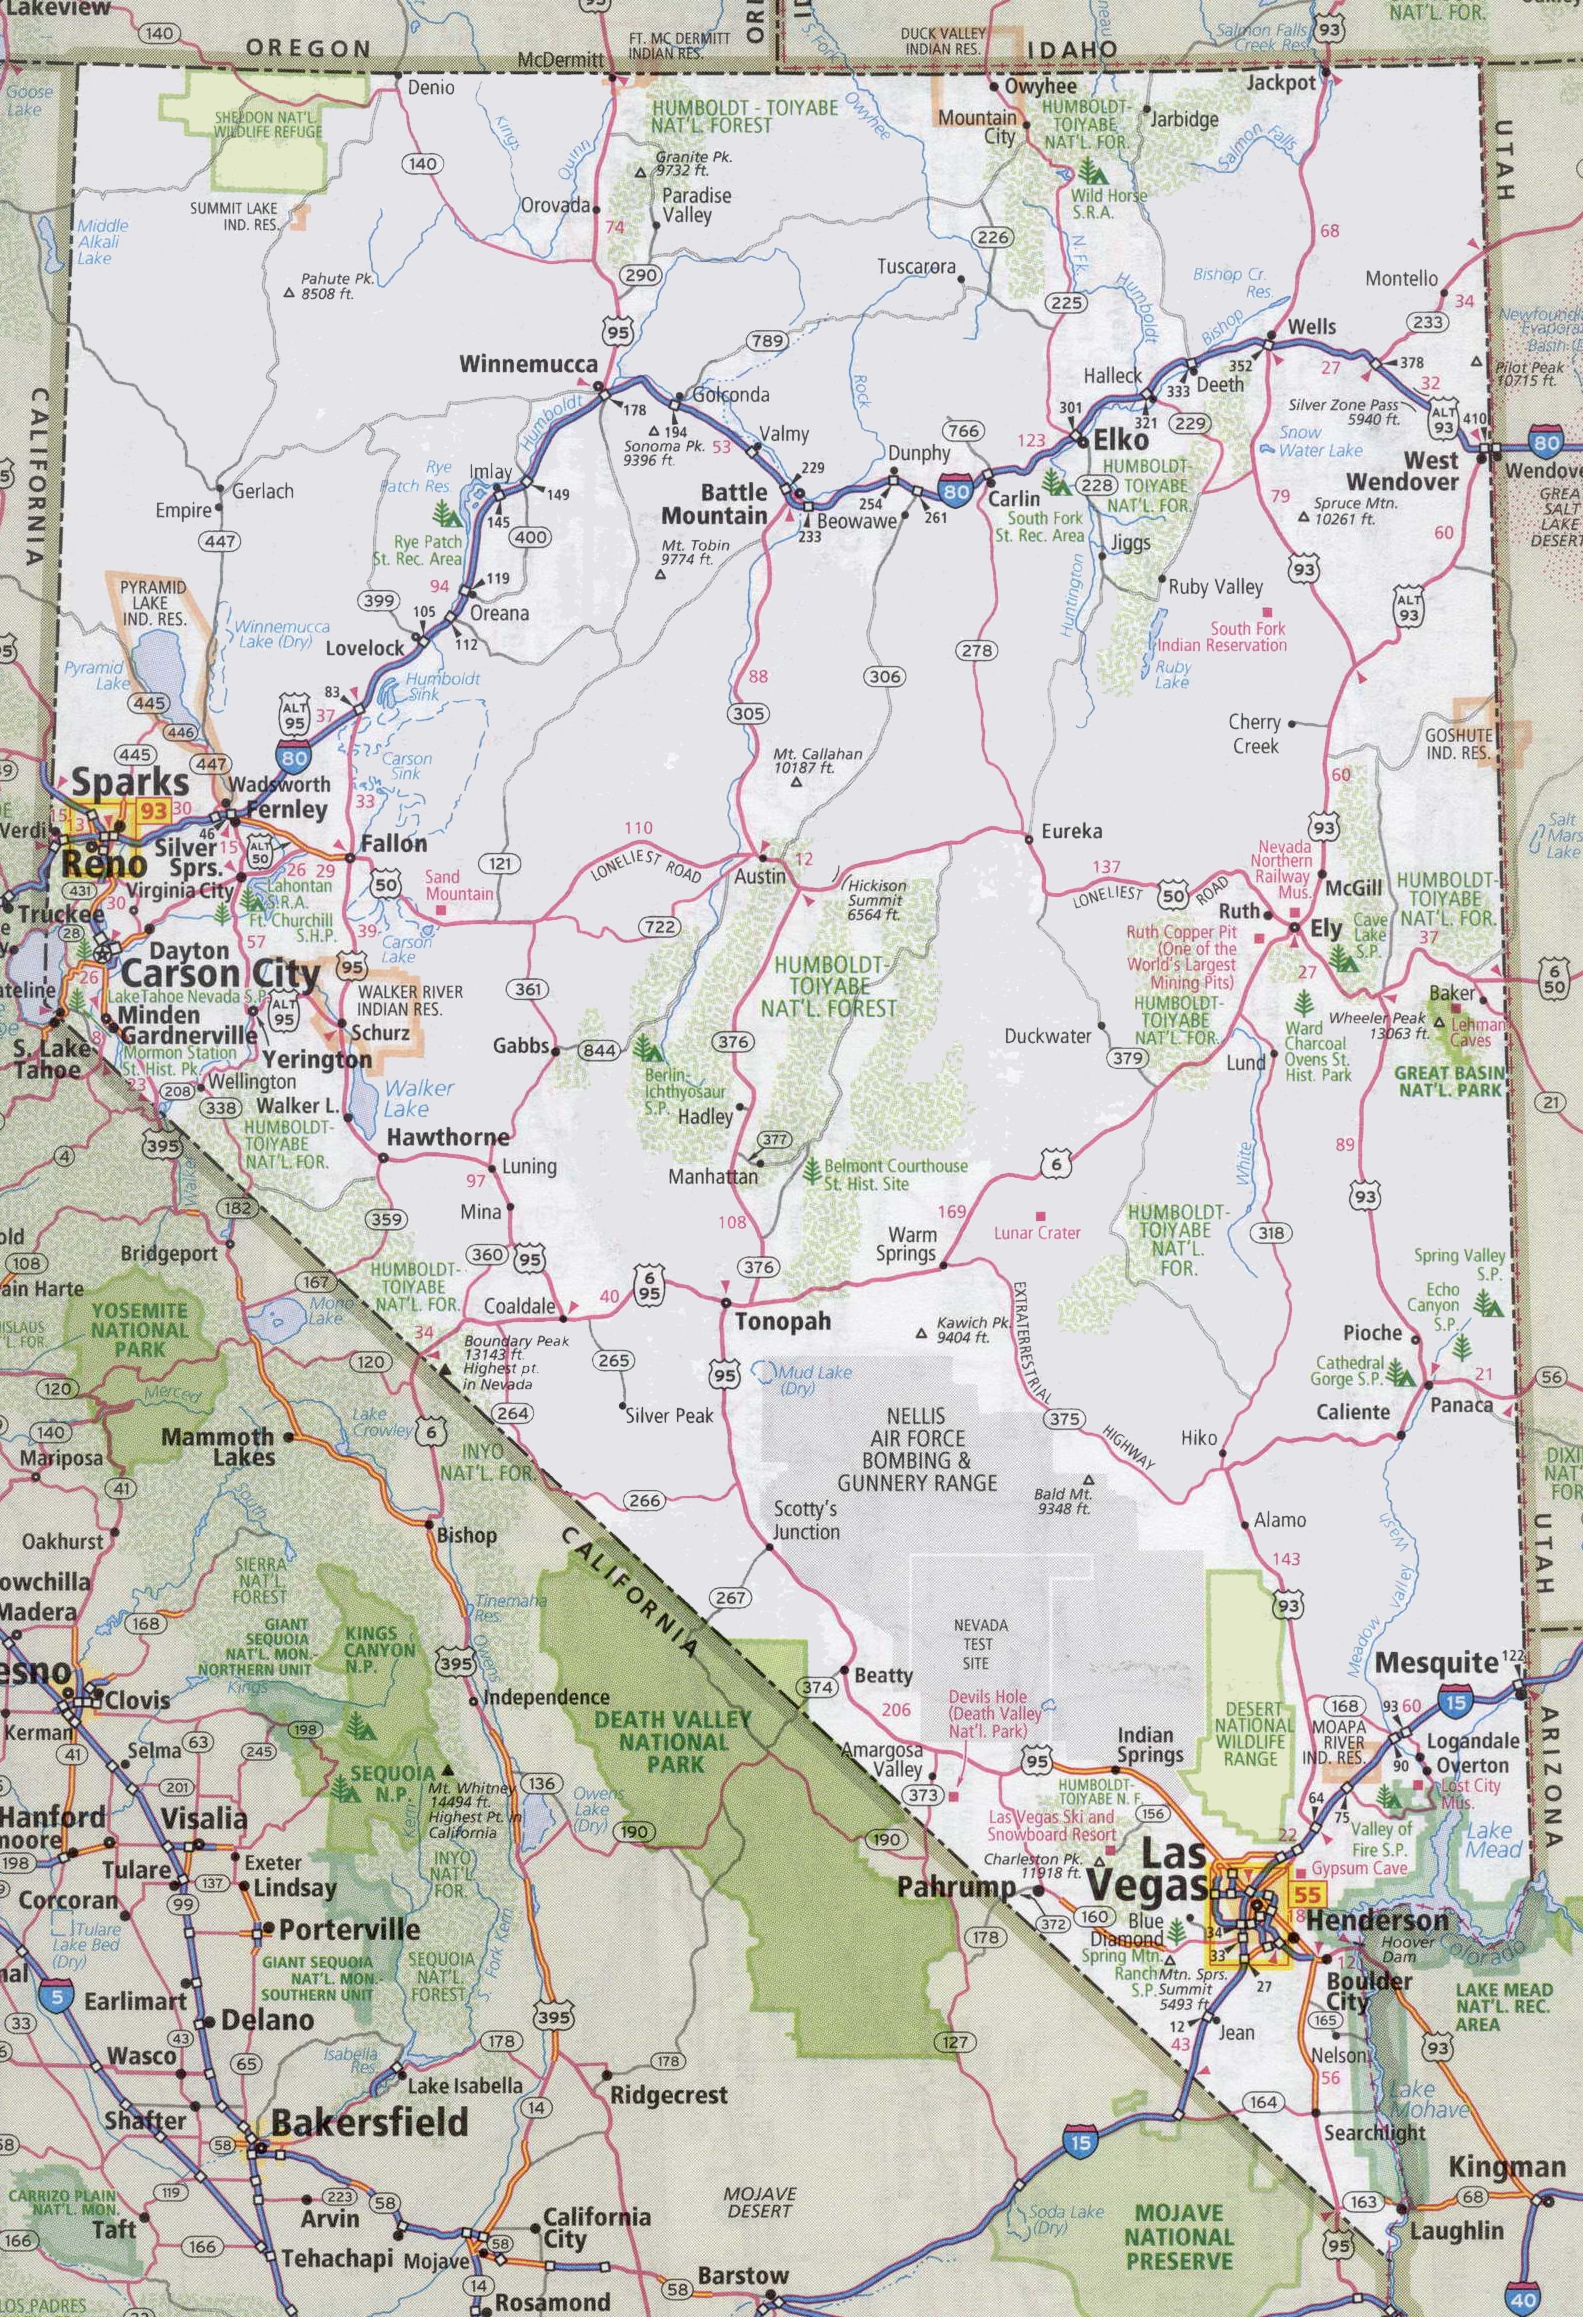 Nevada Road Map Nevada road map